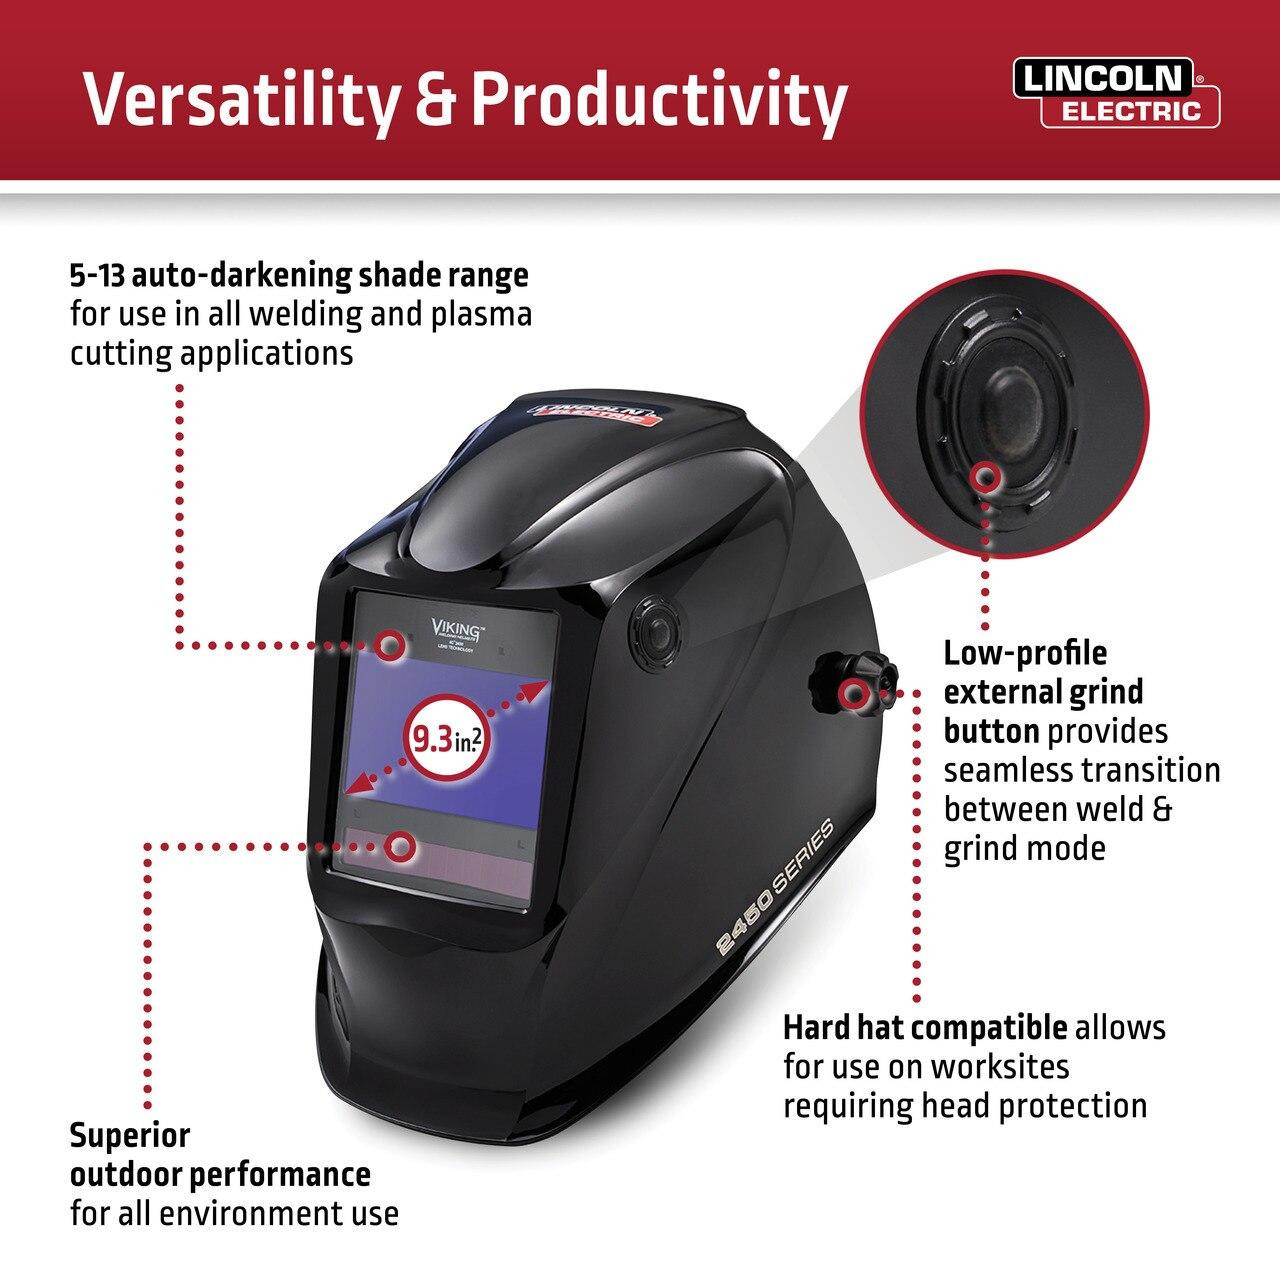 Lincoln Viking 2450 Heavy Metal Welding Helmet K3029-4